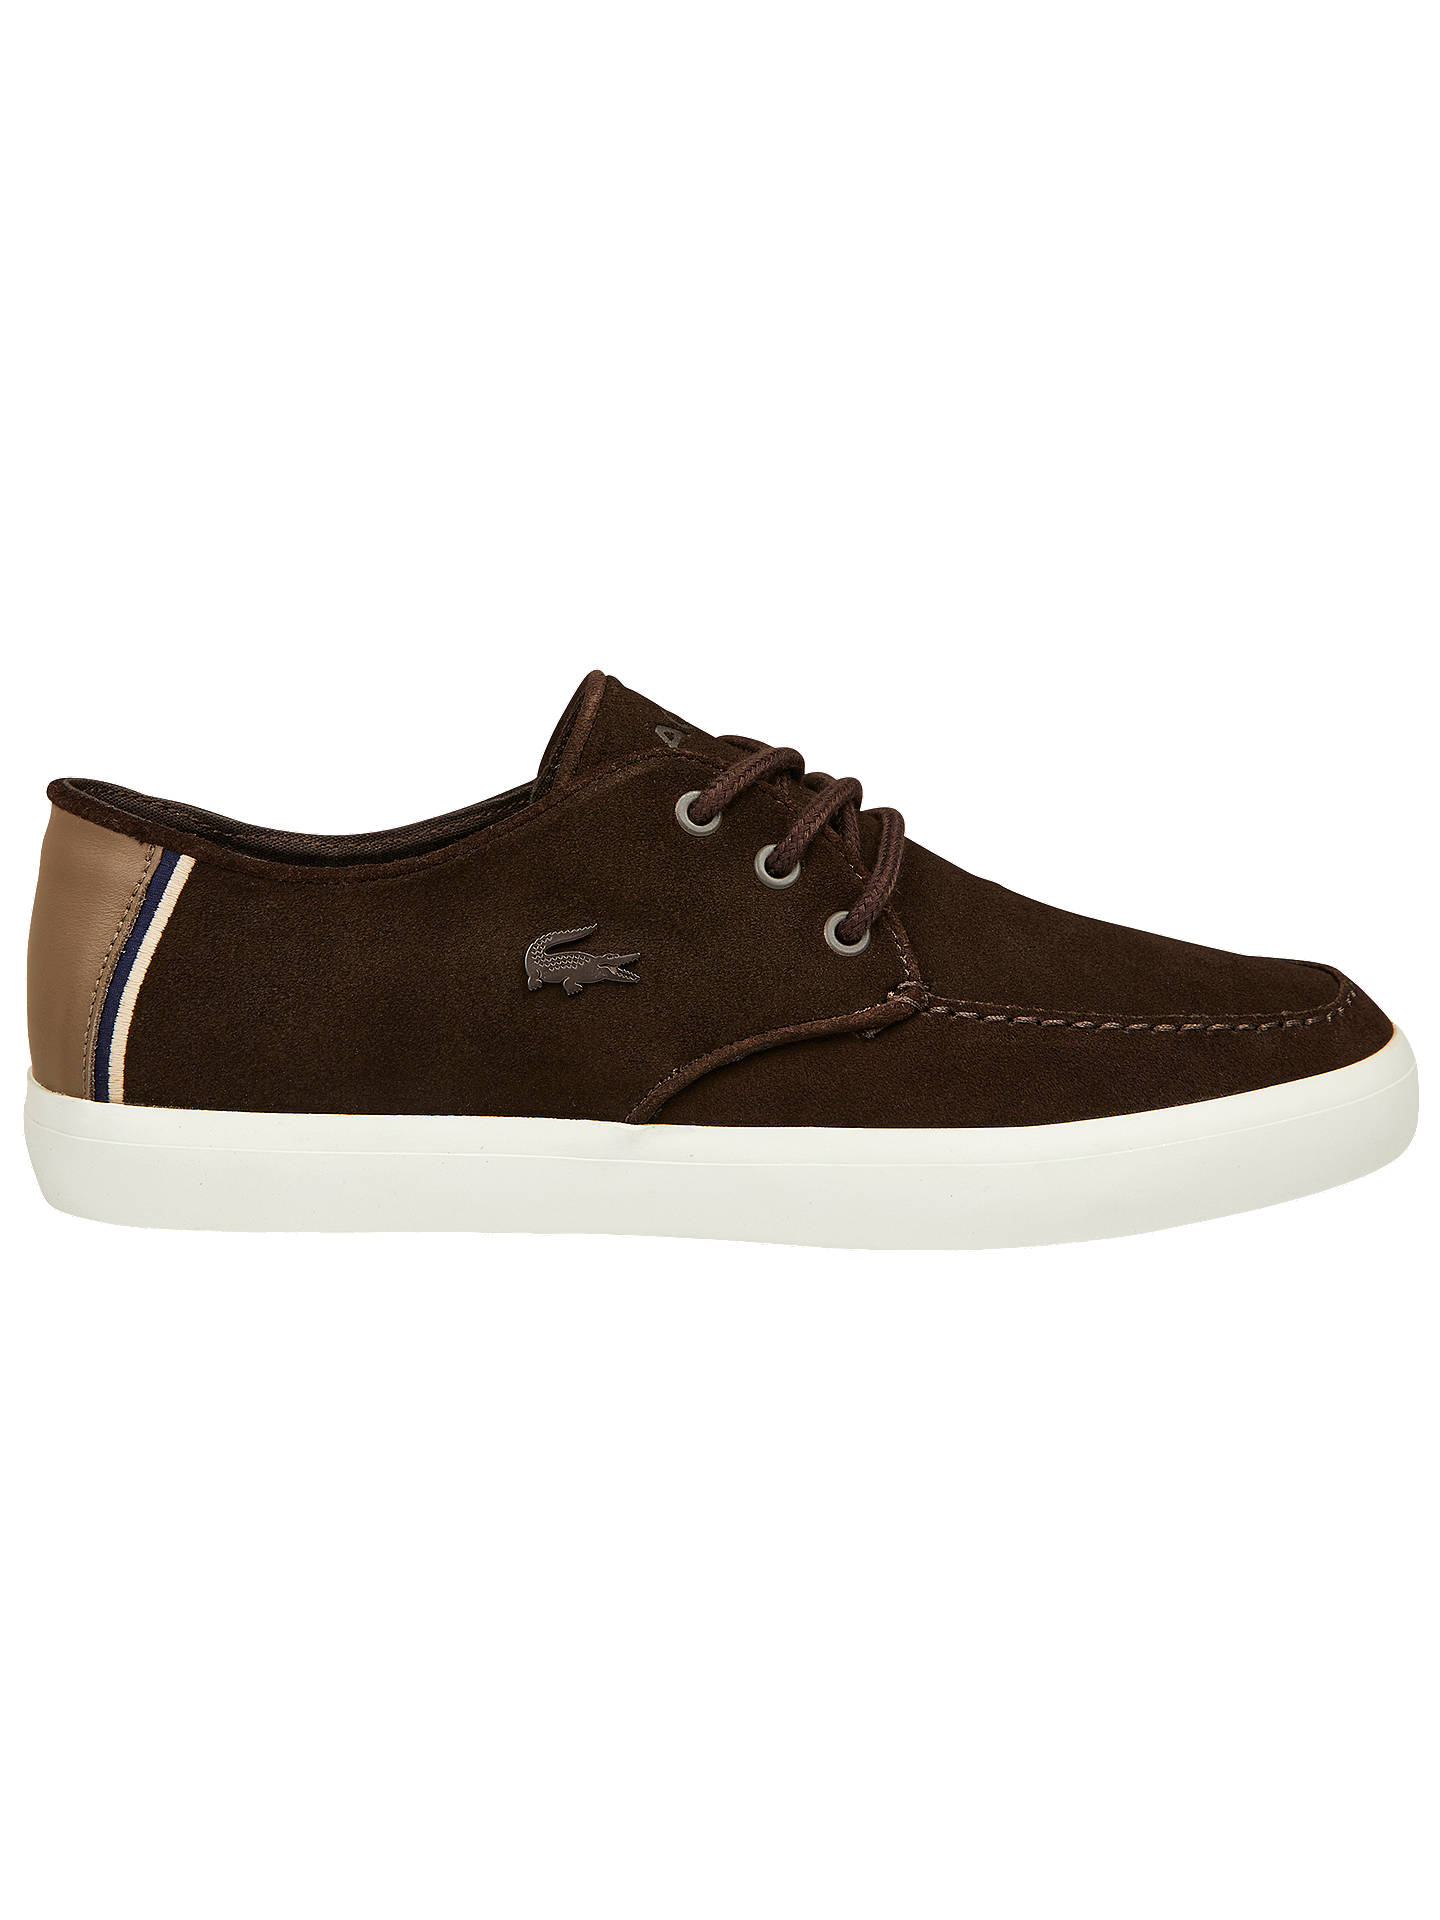 ec1bddba0 Lacoste Servin Suede Trainers at John Lewis   Partners